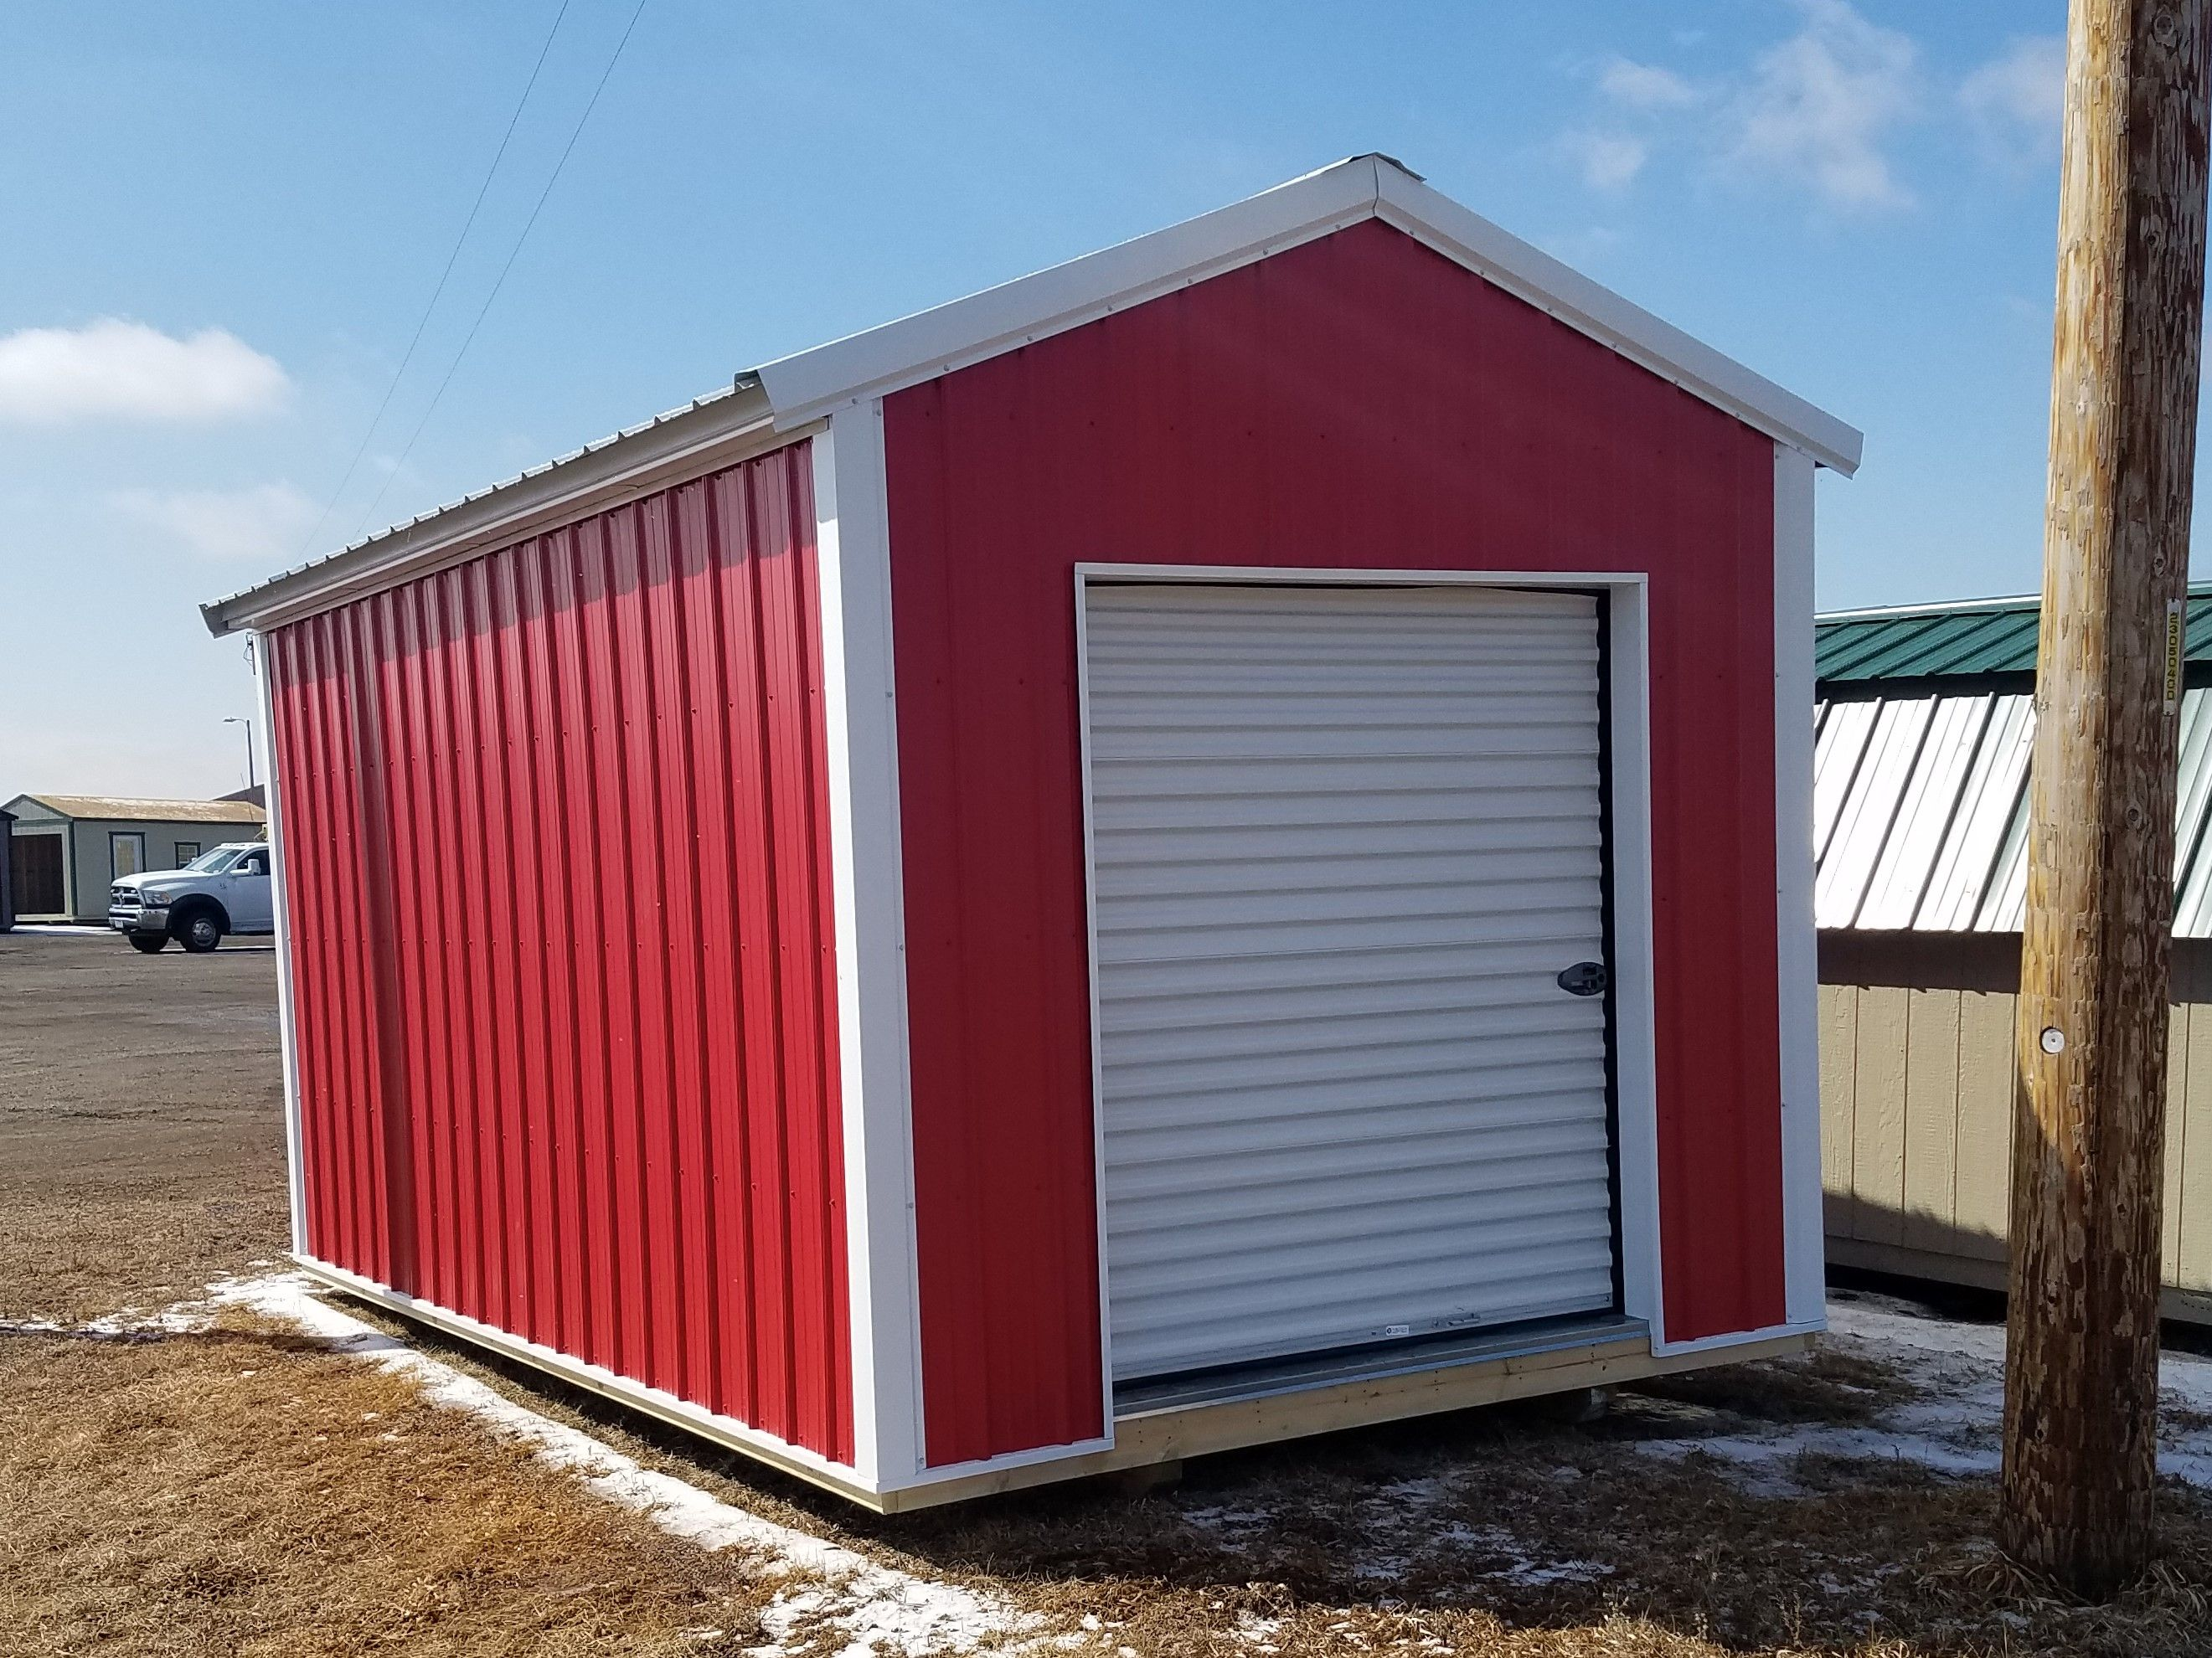 10x16 Utility Shed Built By Grandview Buildings White Metal Roof Trim Red Pole Barn Steel Siding 6 Roll Up Door R Roof Trim Barn Siding Steel Siding